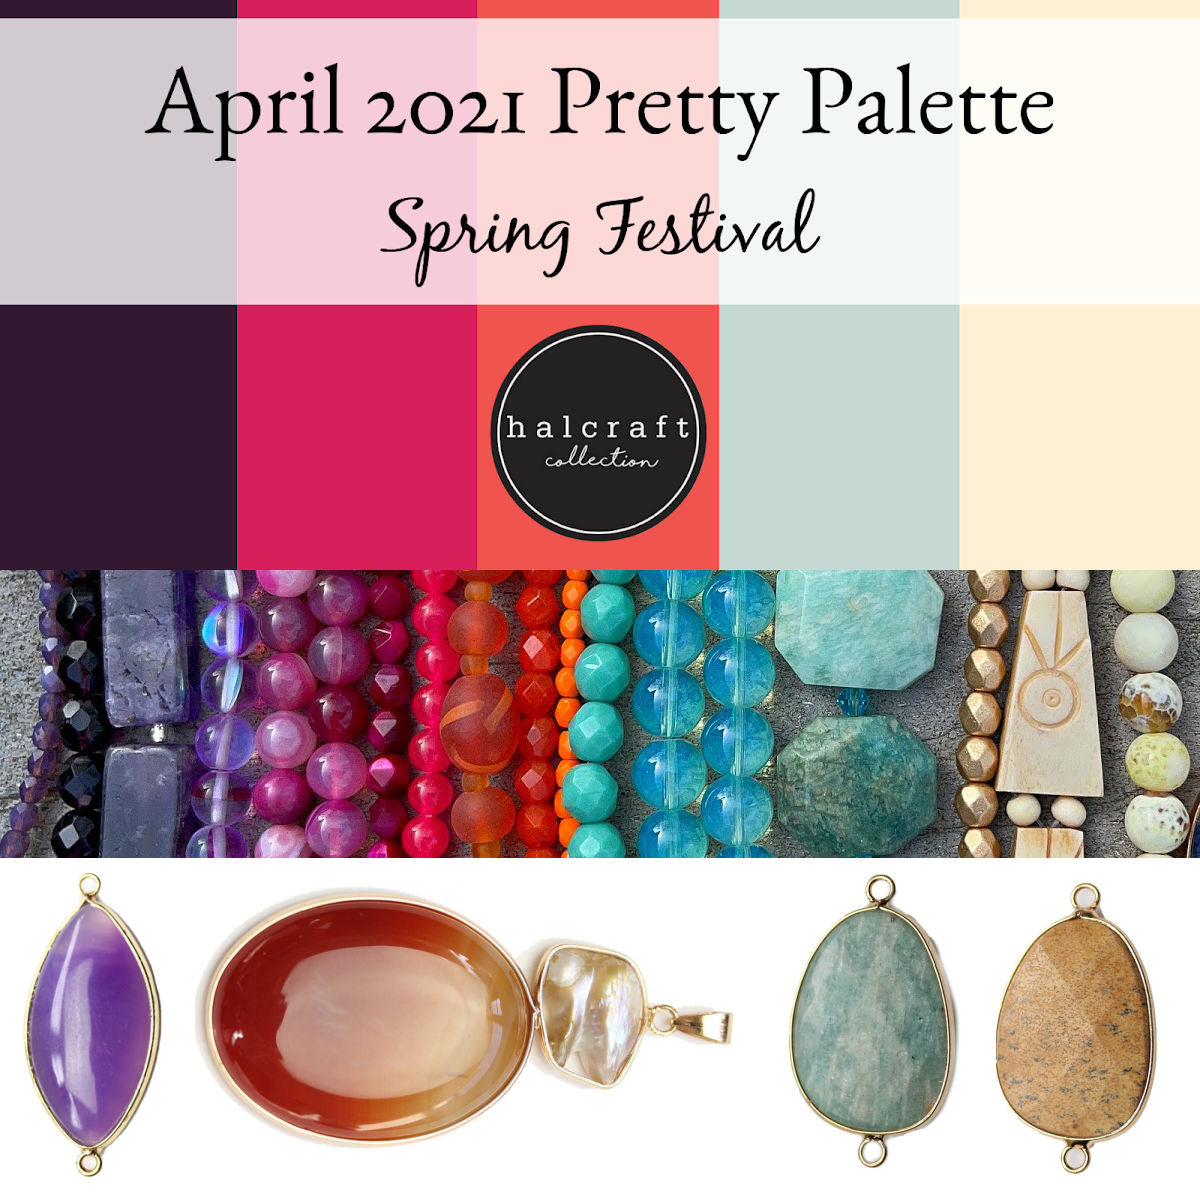 Abril de 2021 Pretty Palette Bead Kit